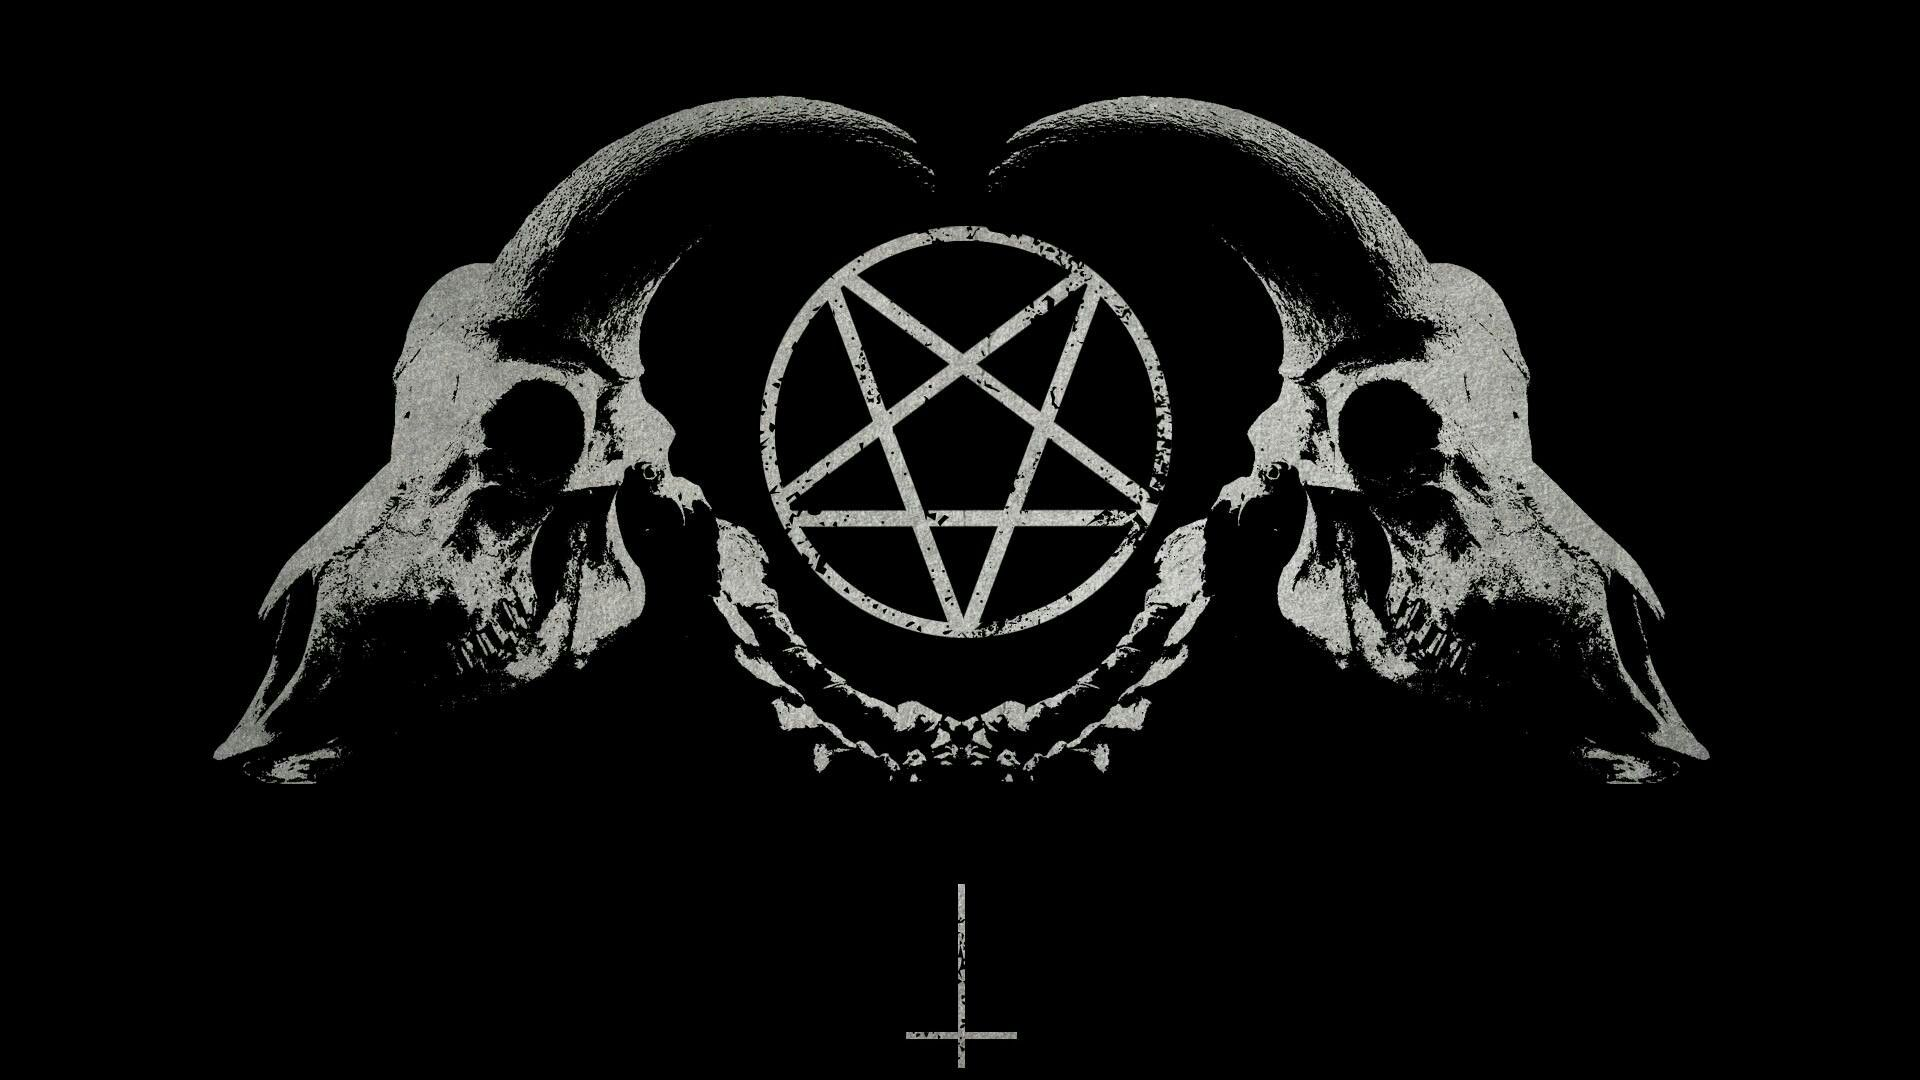 Satanic Wallpaper 1920x1080 With Images Ciemna Sztuka